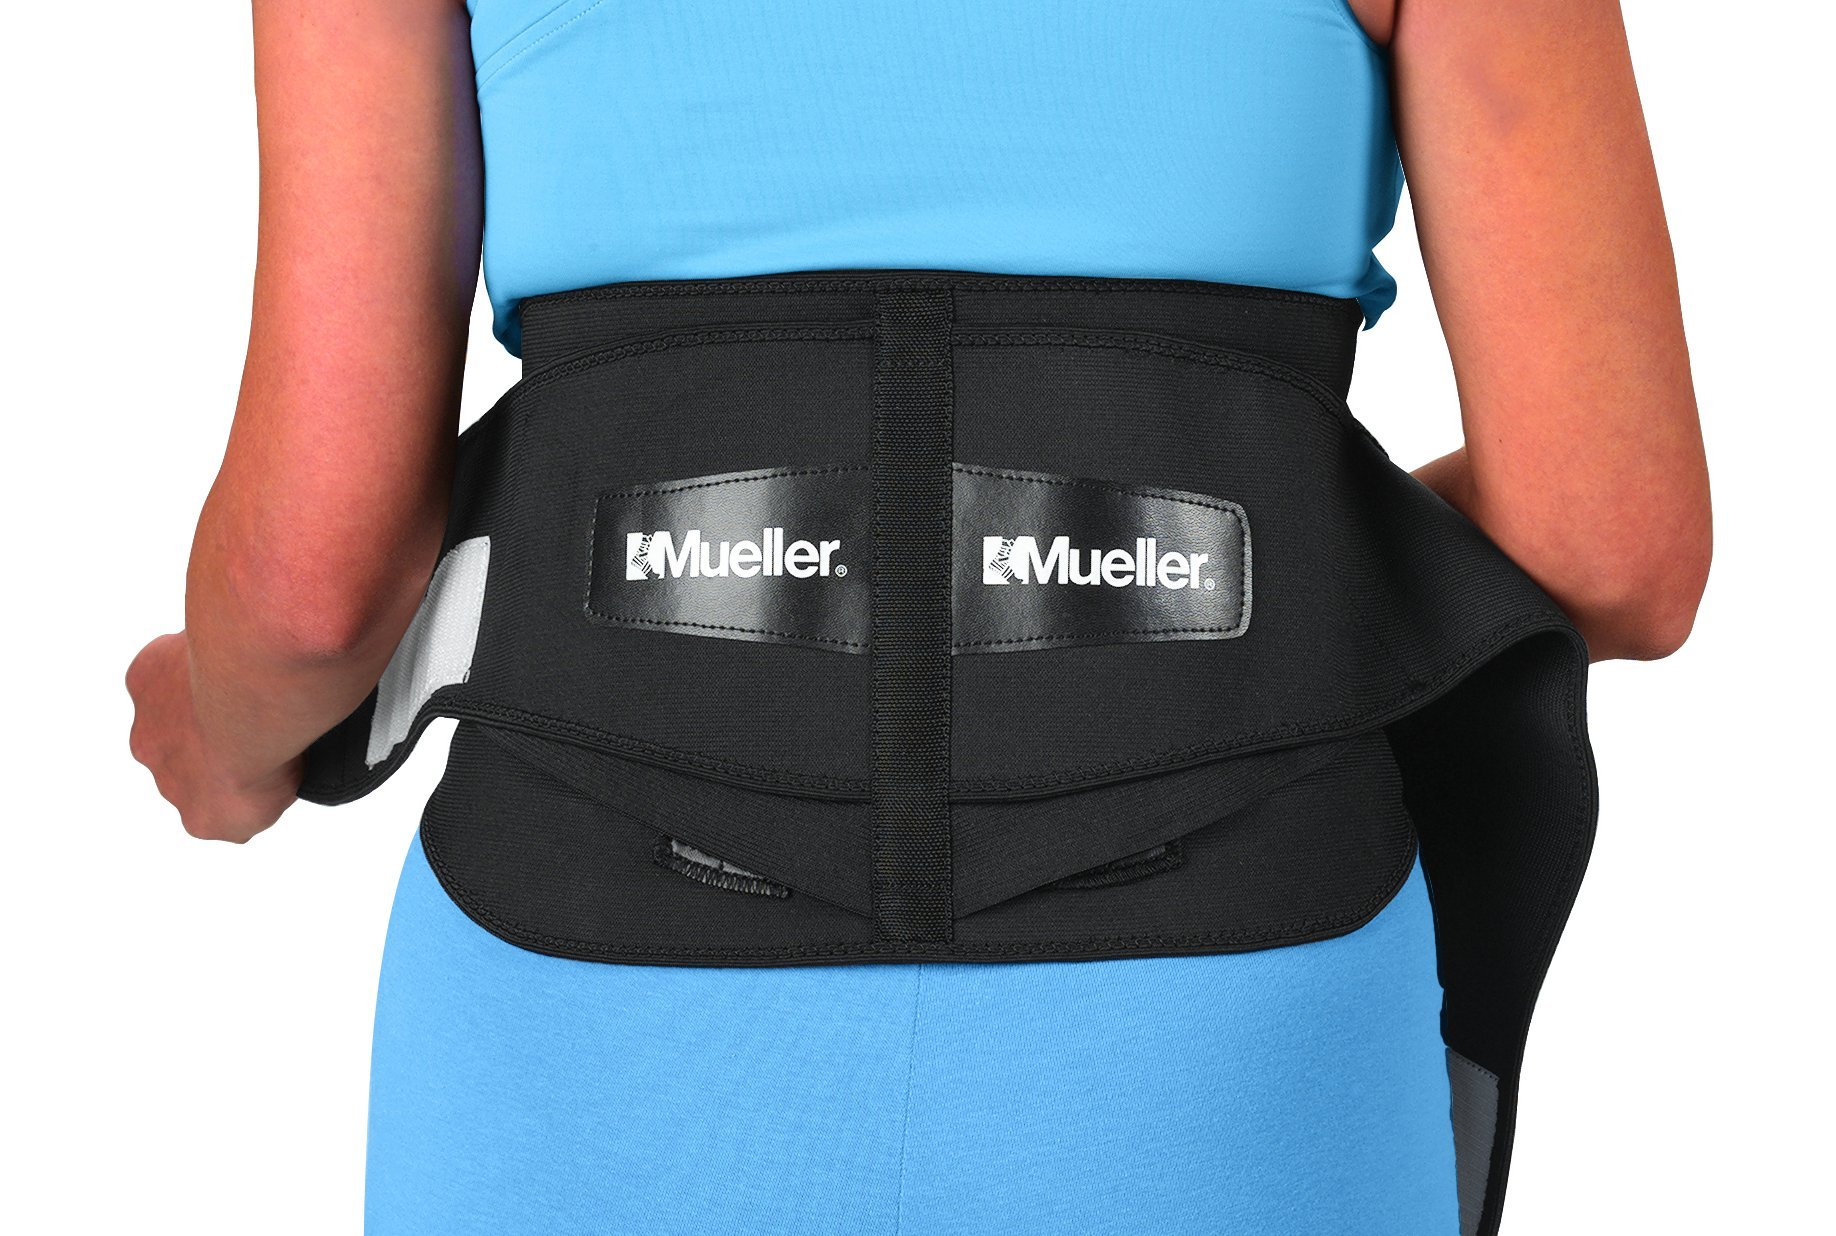 Mueller 255 Lumbar Support Back Brace with Removable Pad, Black, Regular(Package May Vary) by MUELLER